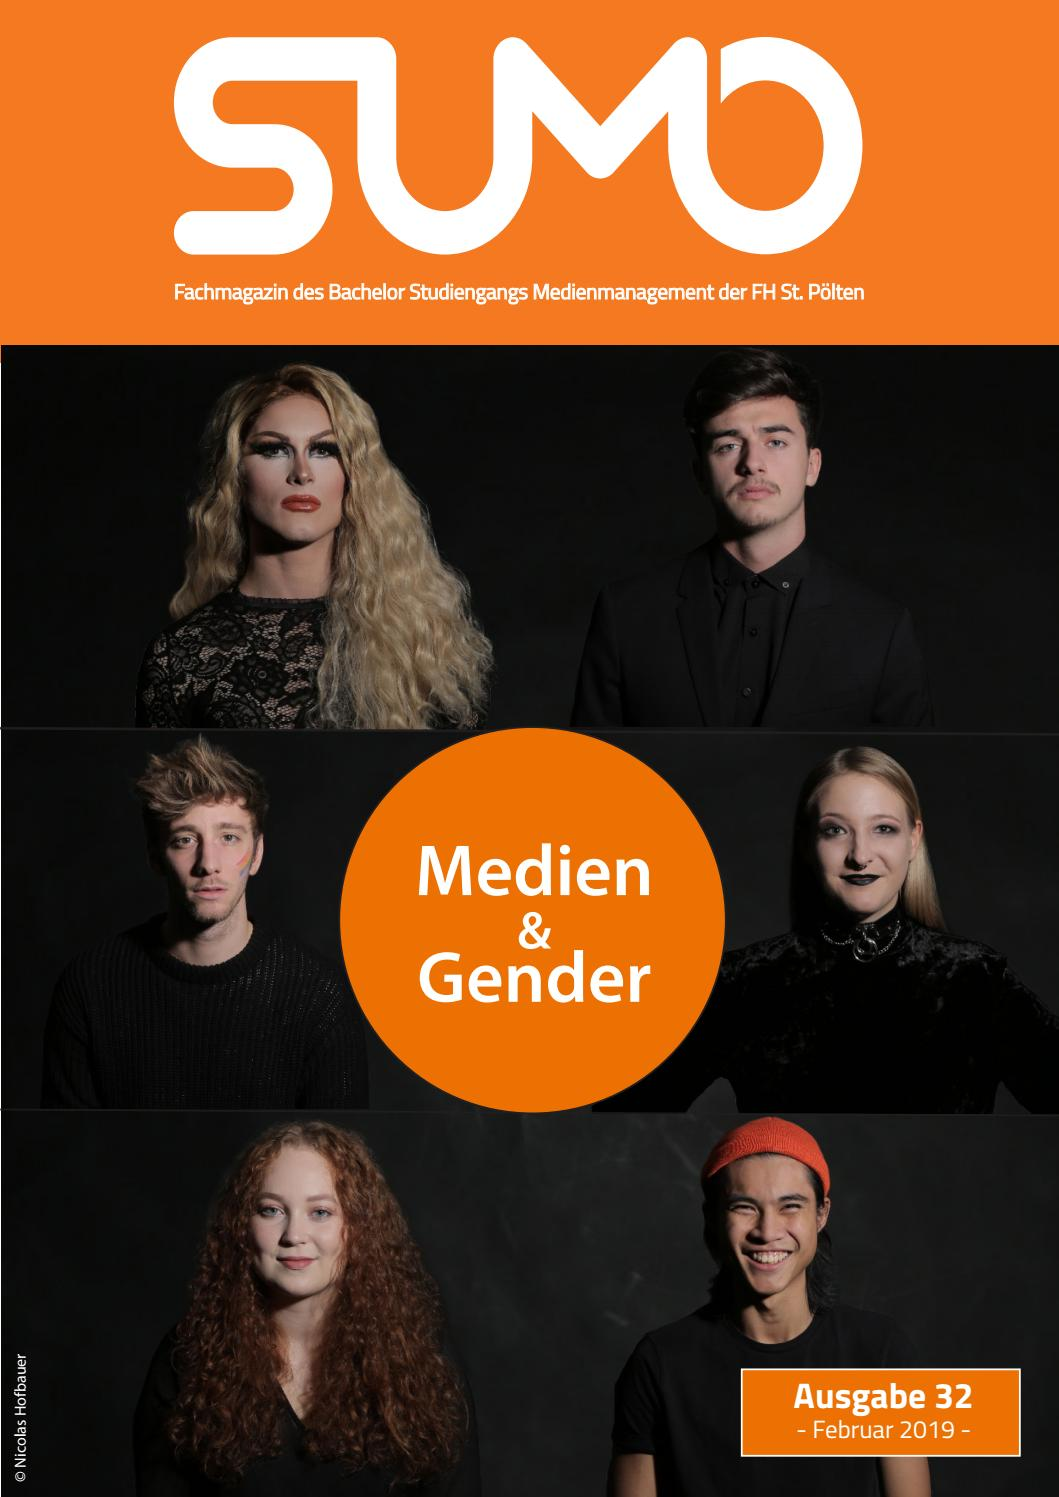 Ries blind dating. Buch-st. magdalena uni leute kennenlernen